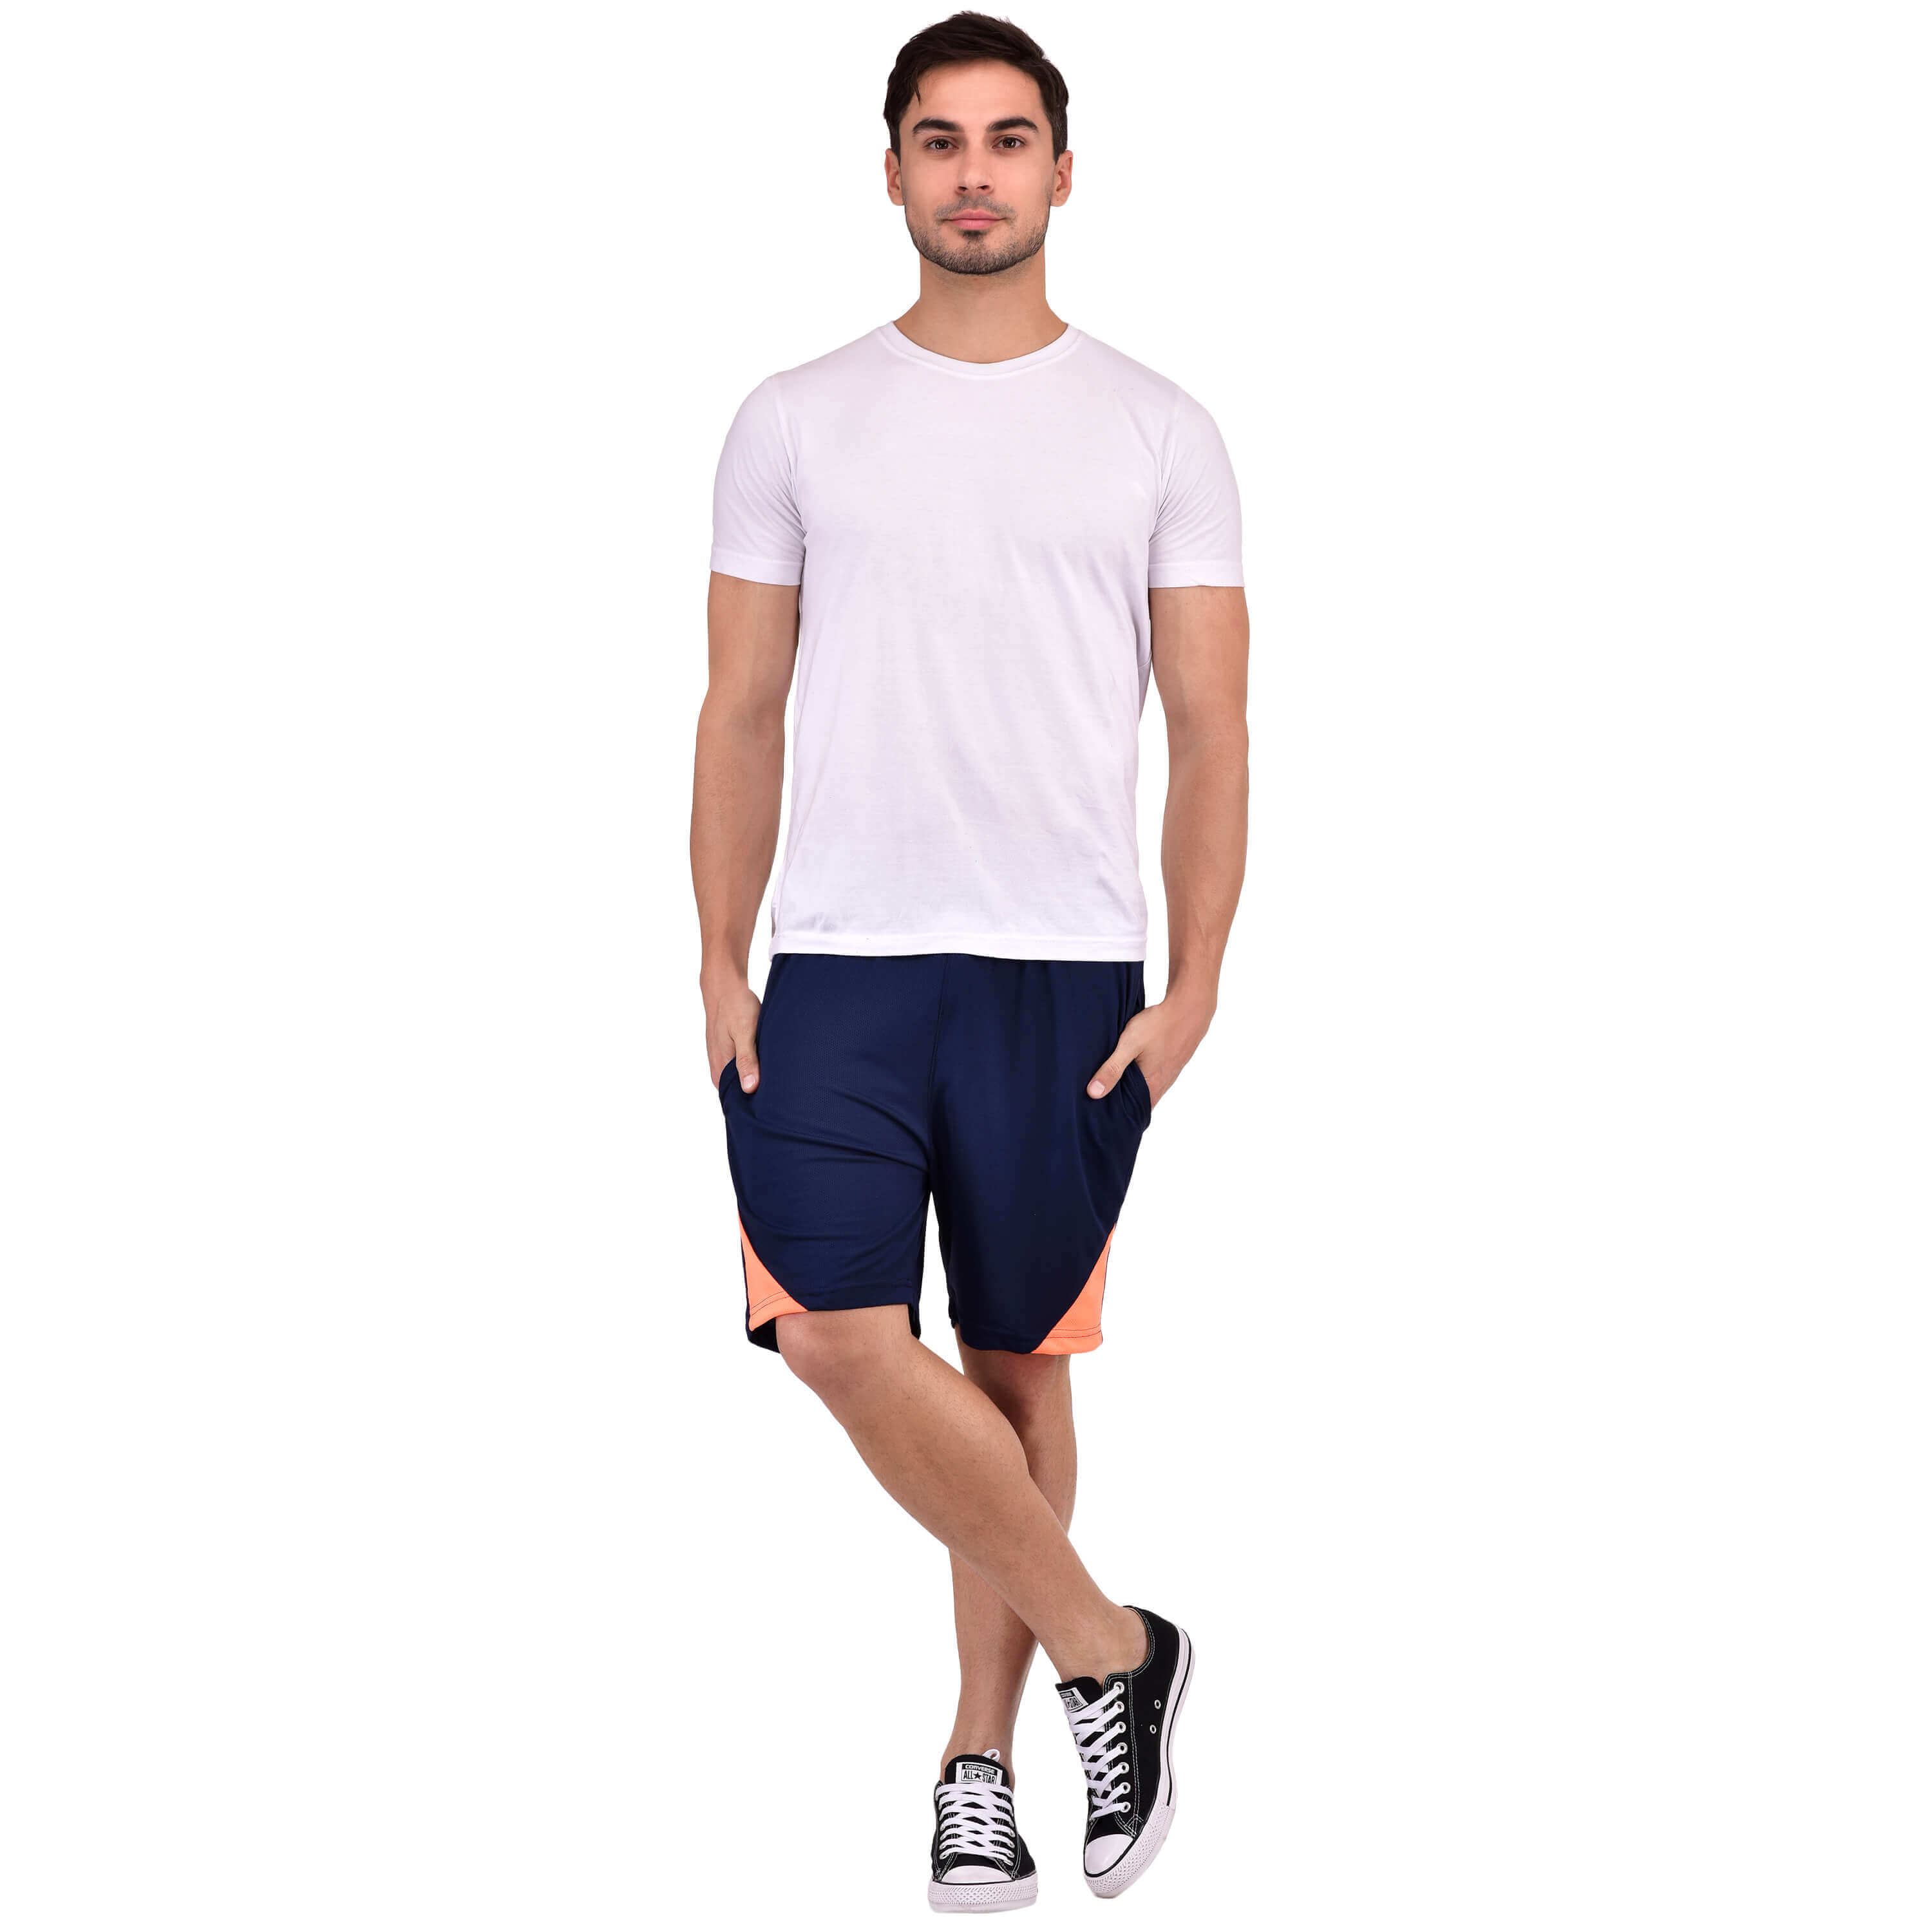 Cotton T Shirts Manufacturers in Srinagar